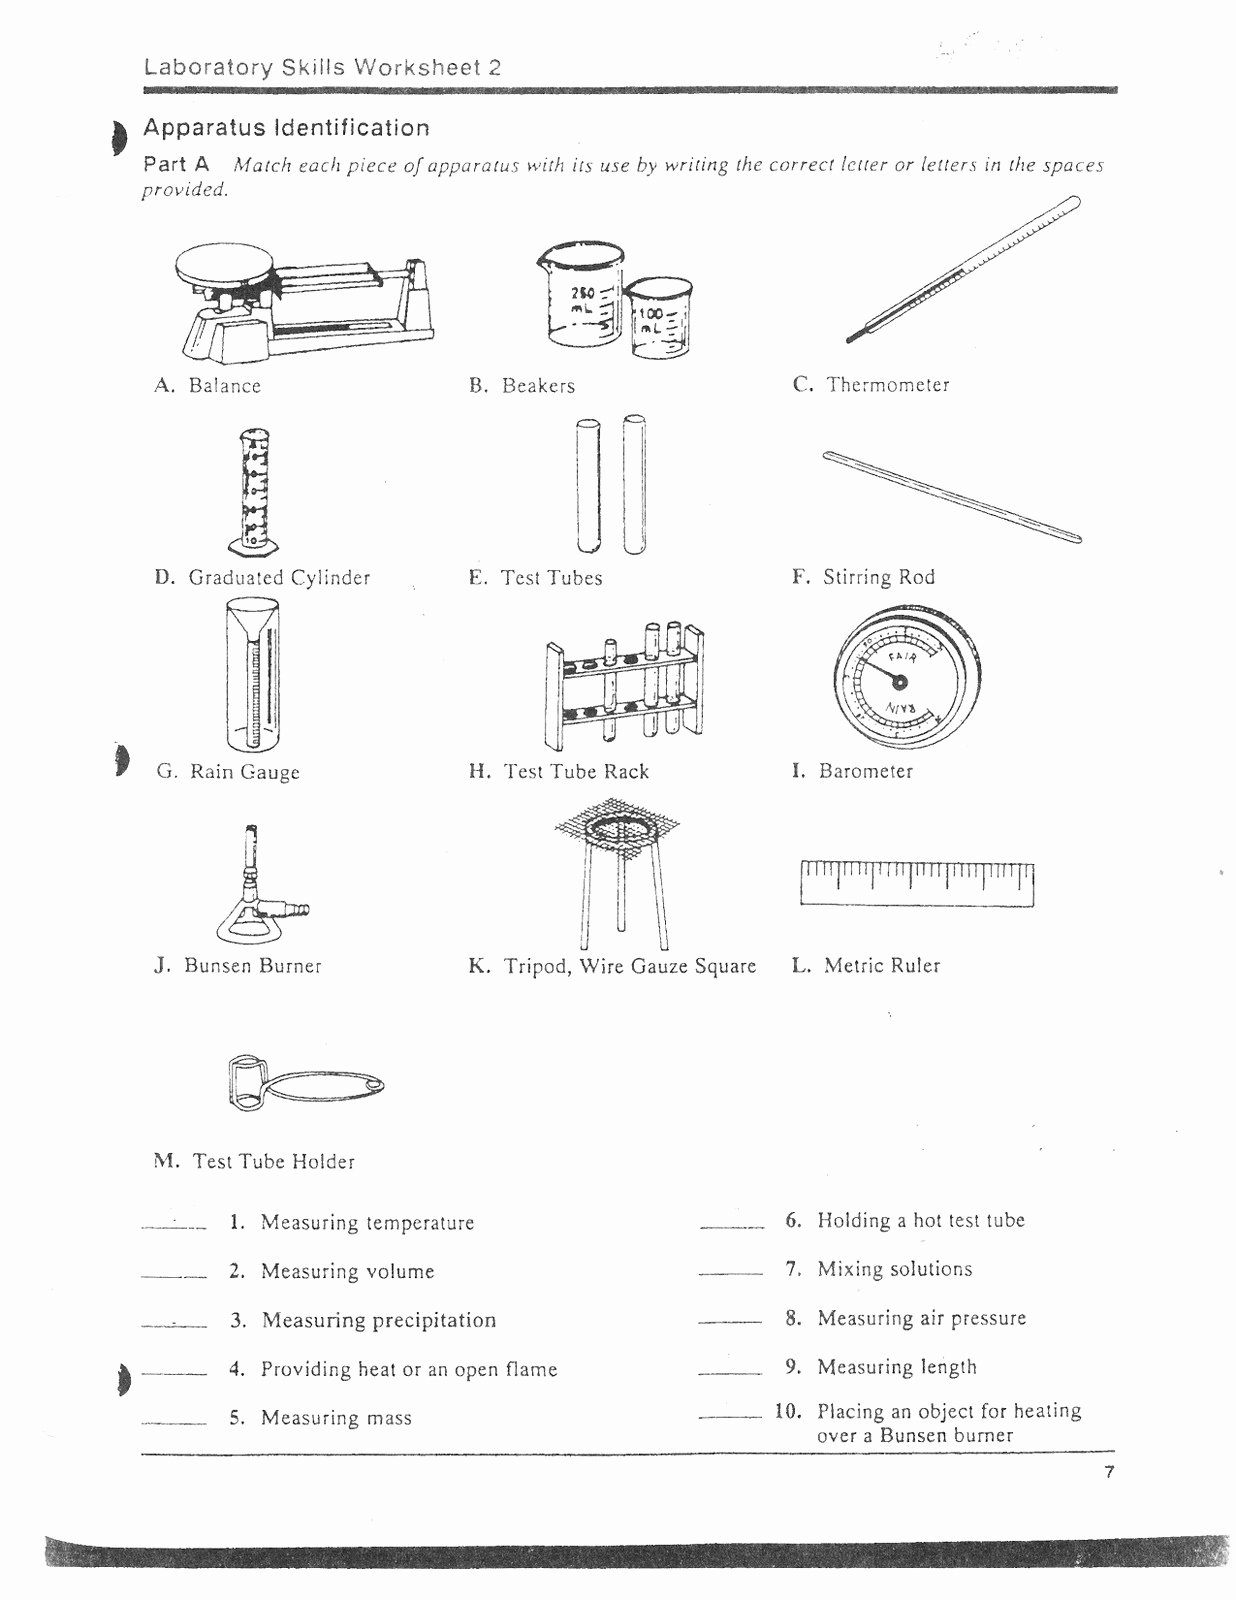 50 Lab Equipment Worksheet Answers